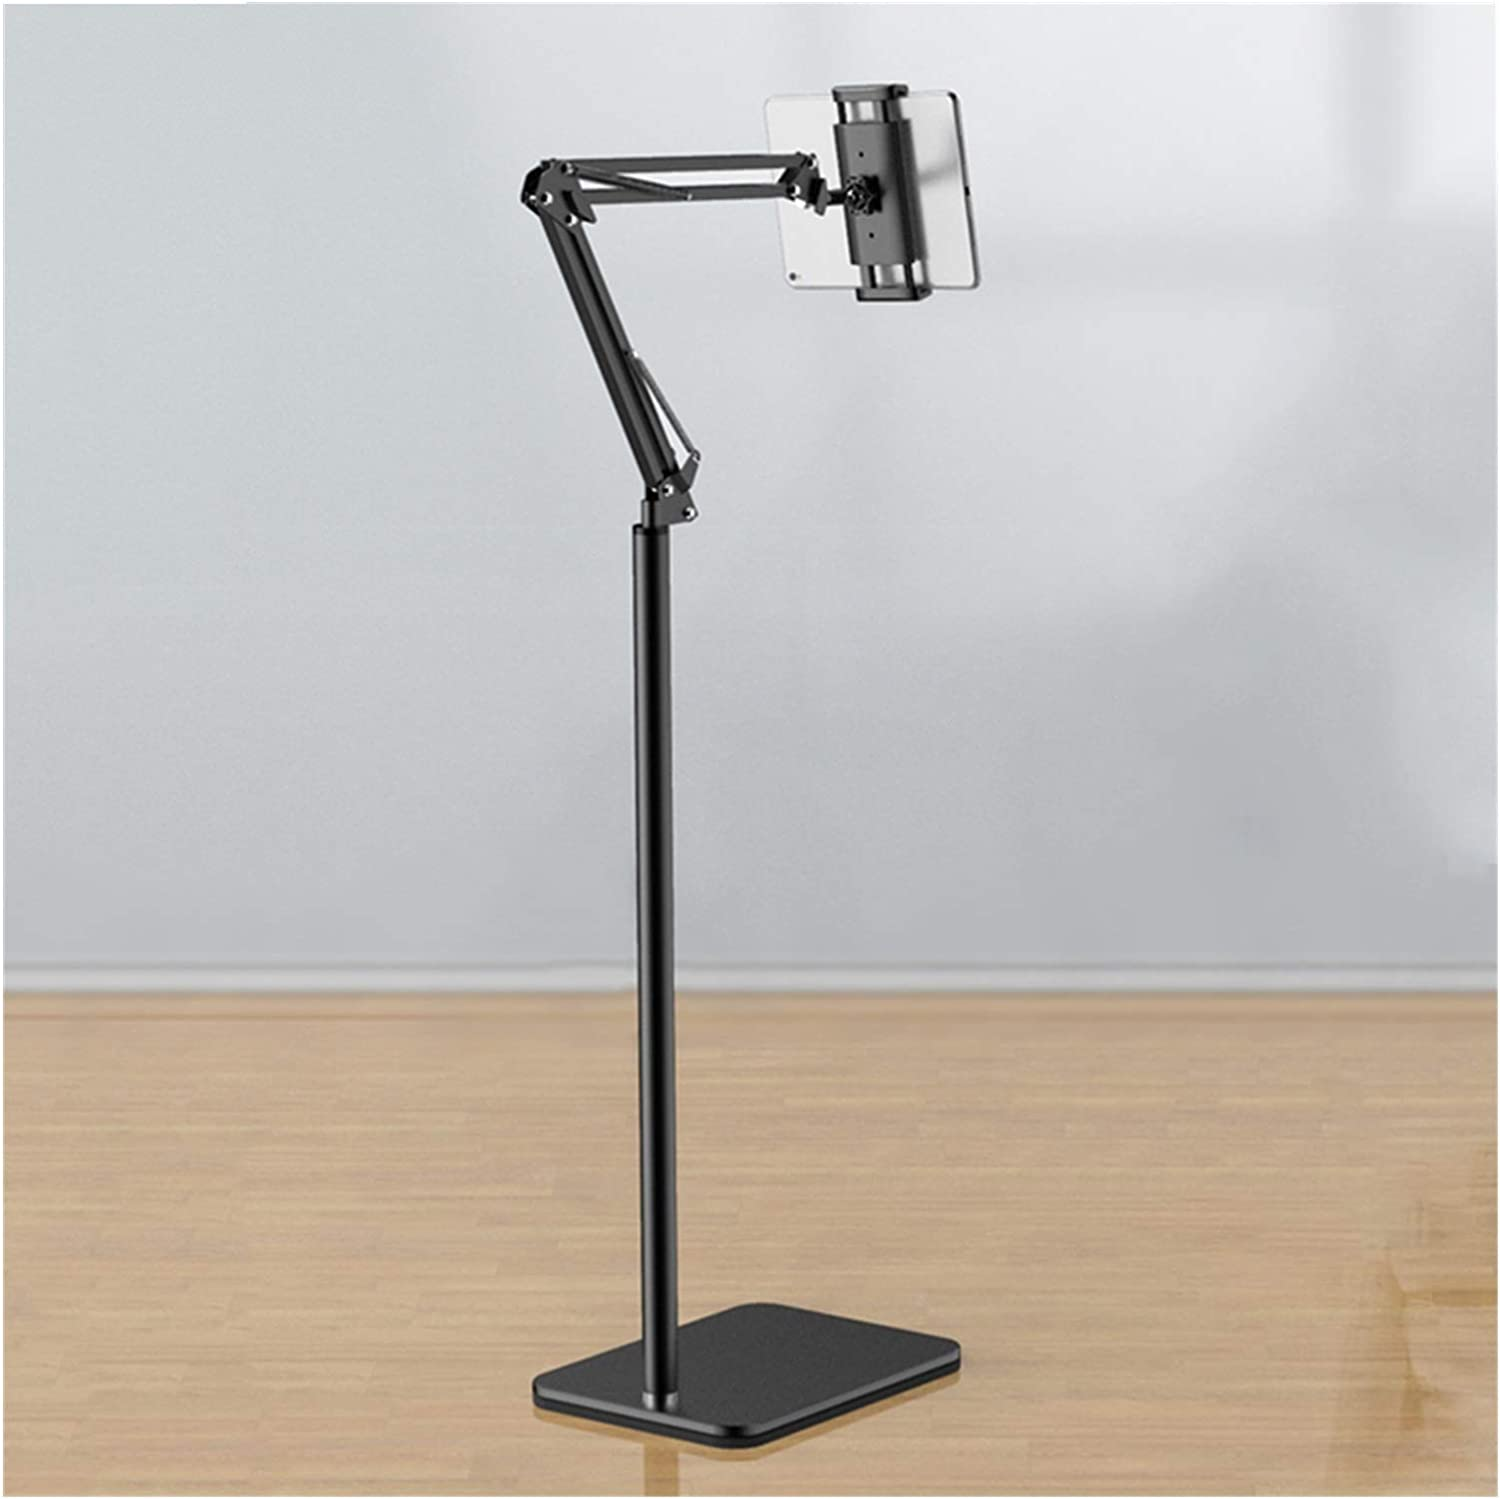 YXCKG Adjustable Tablet Stand Holder Universal New products, world's highest quality popular! for In a popularity